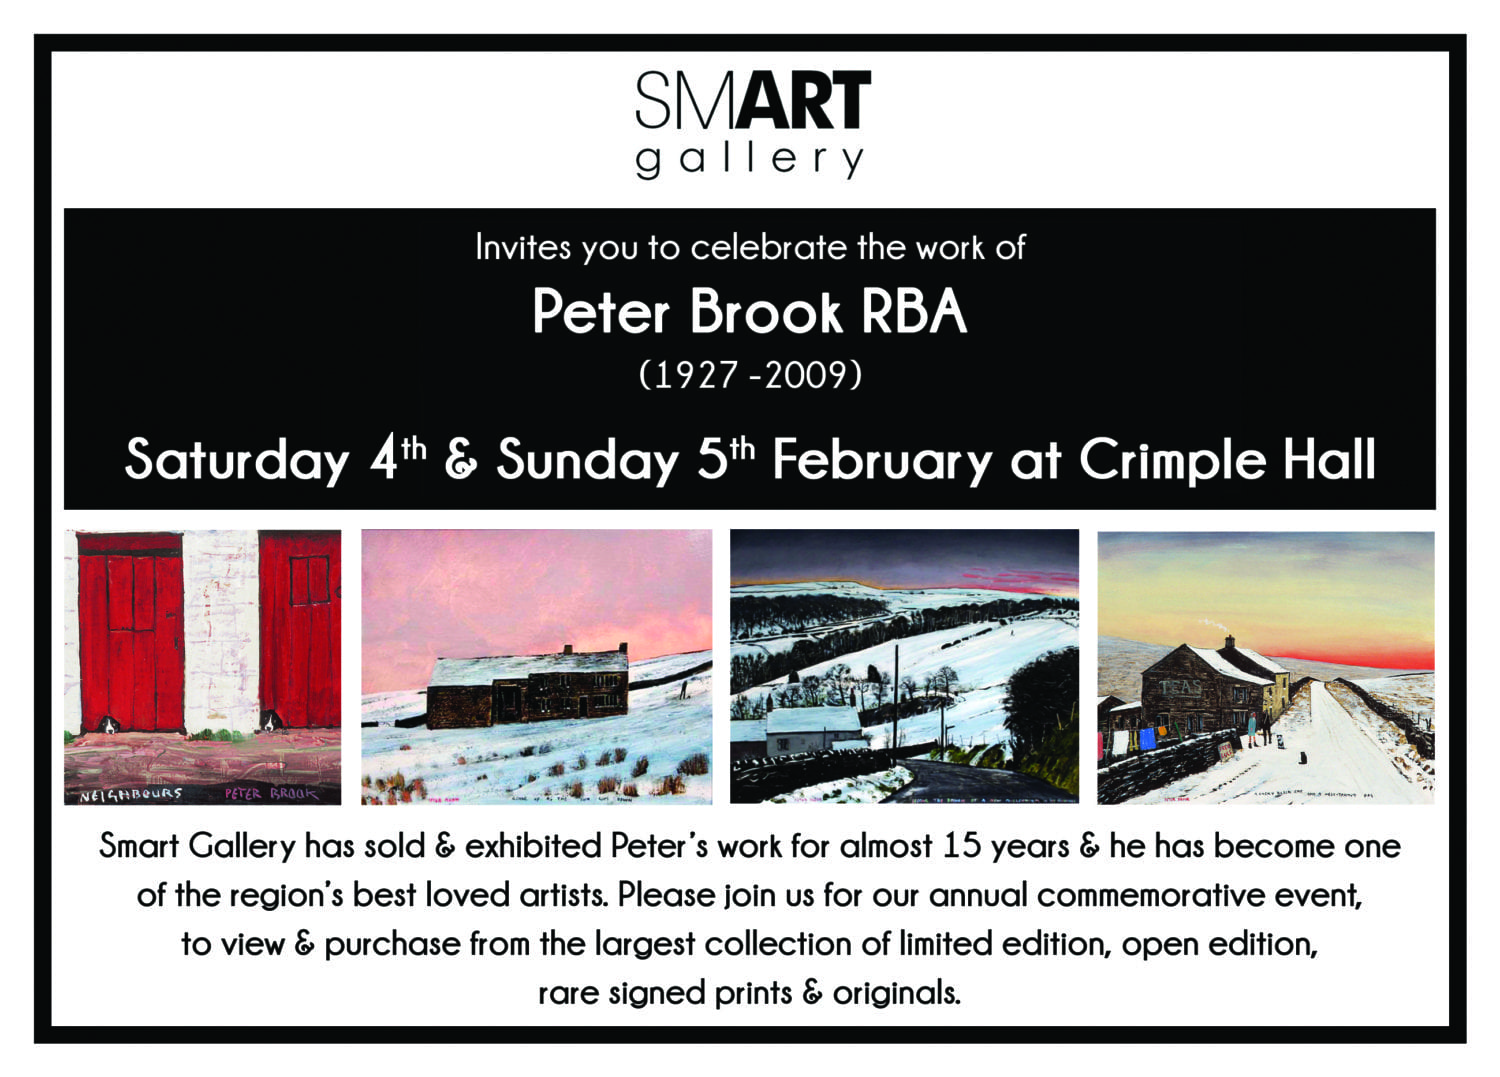 Peter Brook Tribute Exhibition at Crimple Hall | Saturday 4th & Sunday 5th February